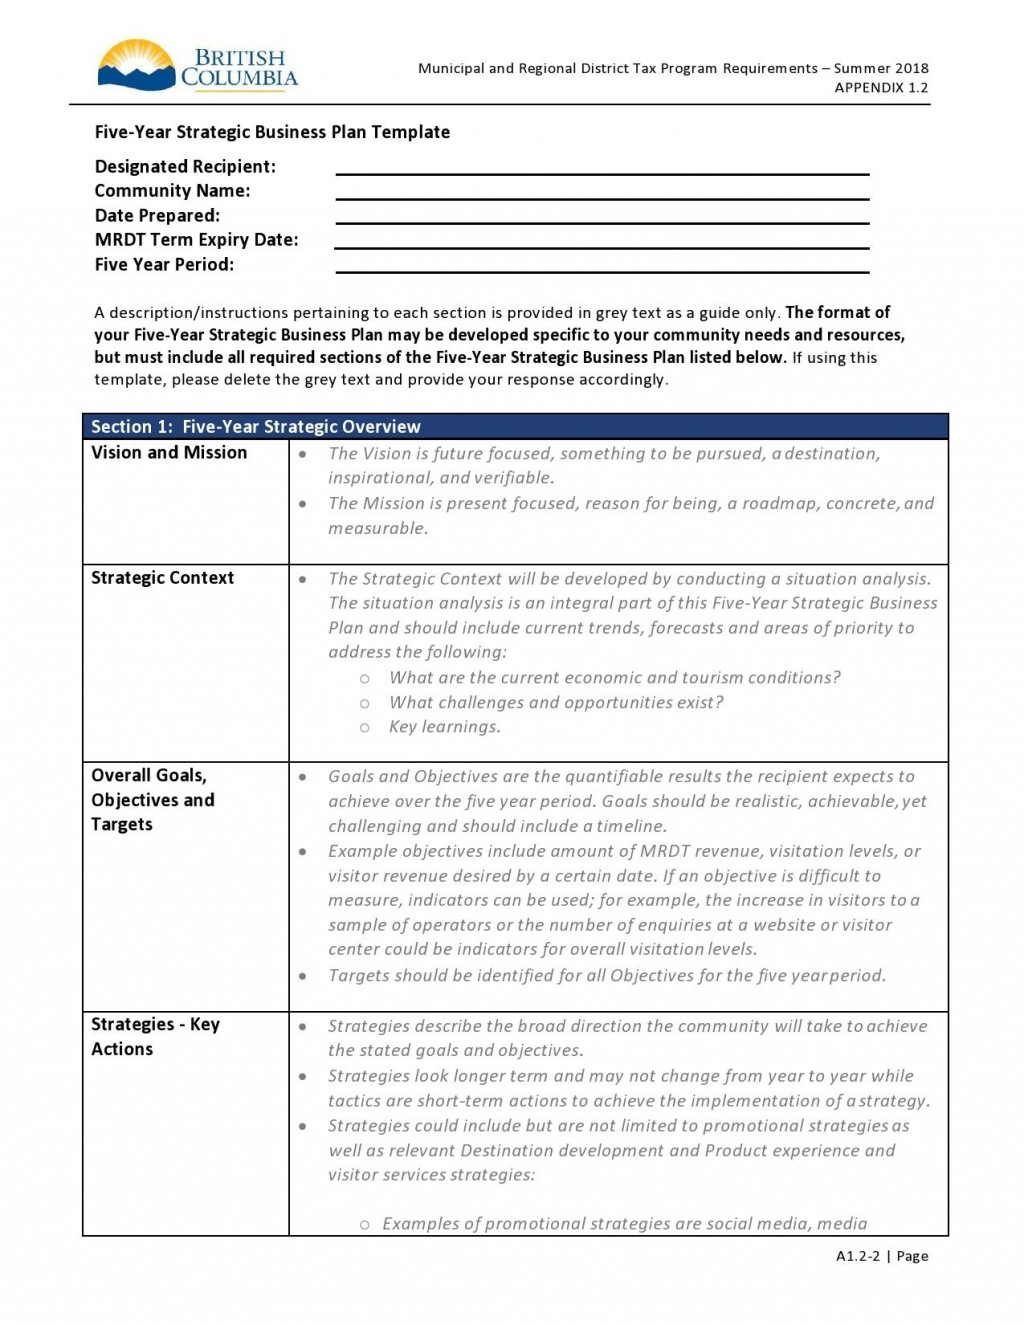 001 Unusual 5 Year Plan Template Image  Pdf Busines For CoupleLarge